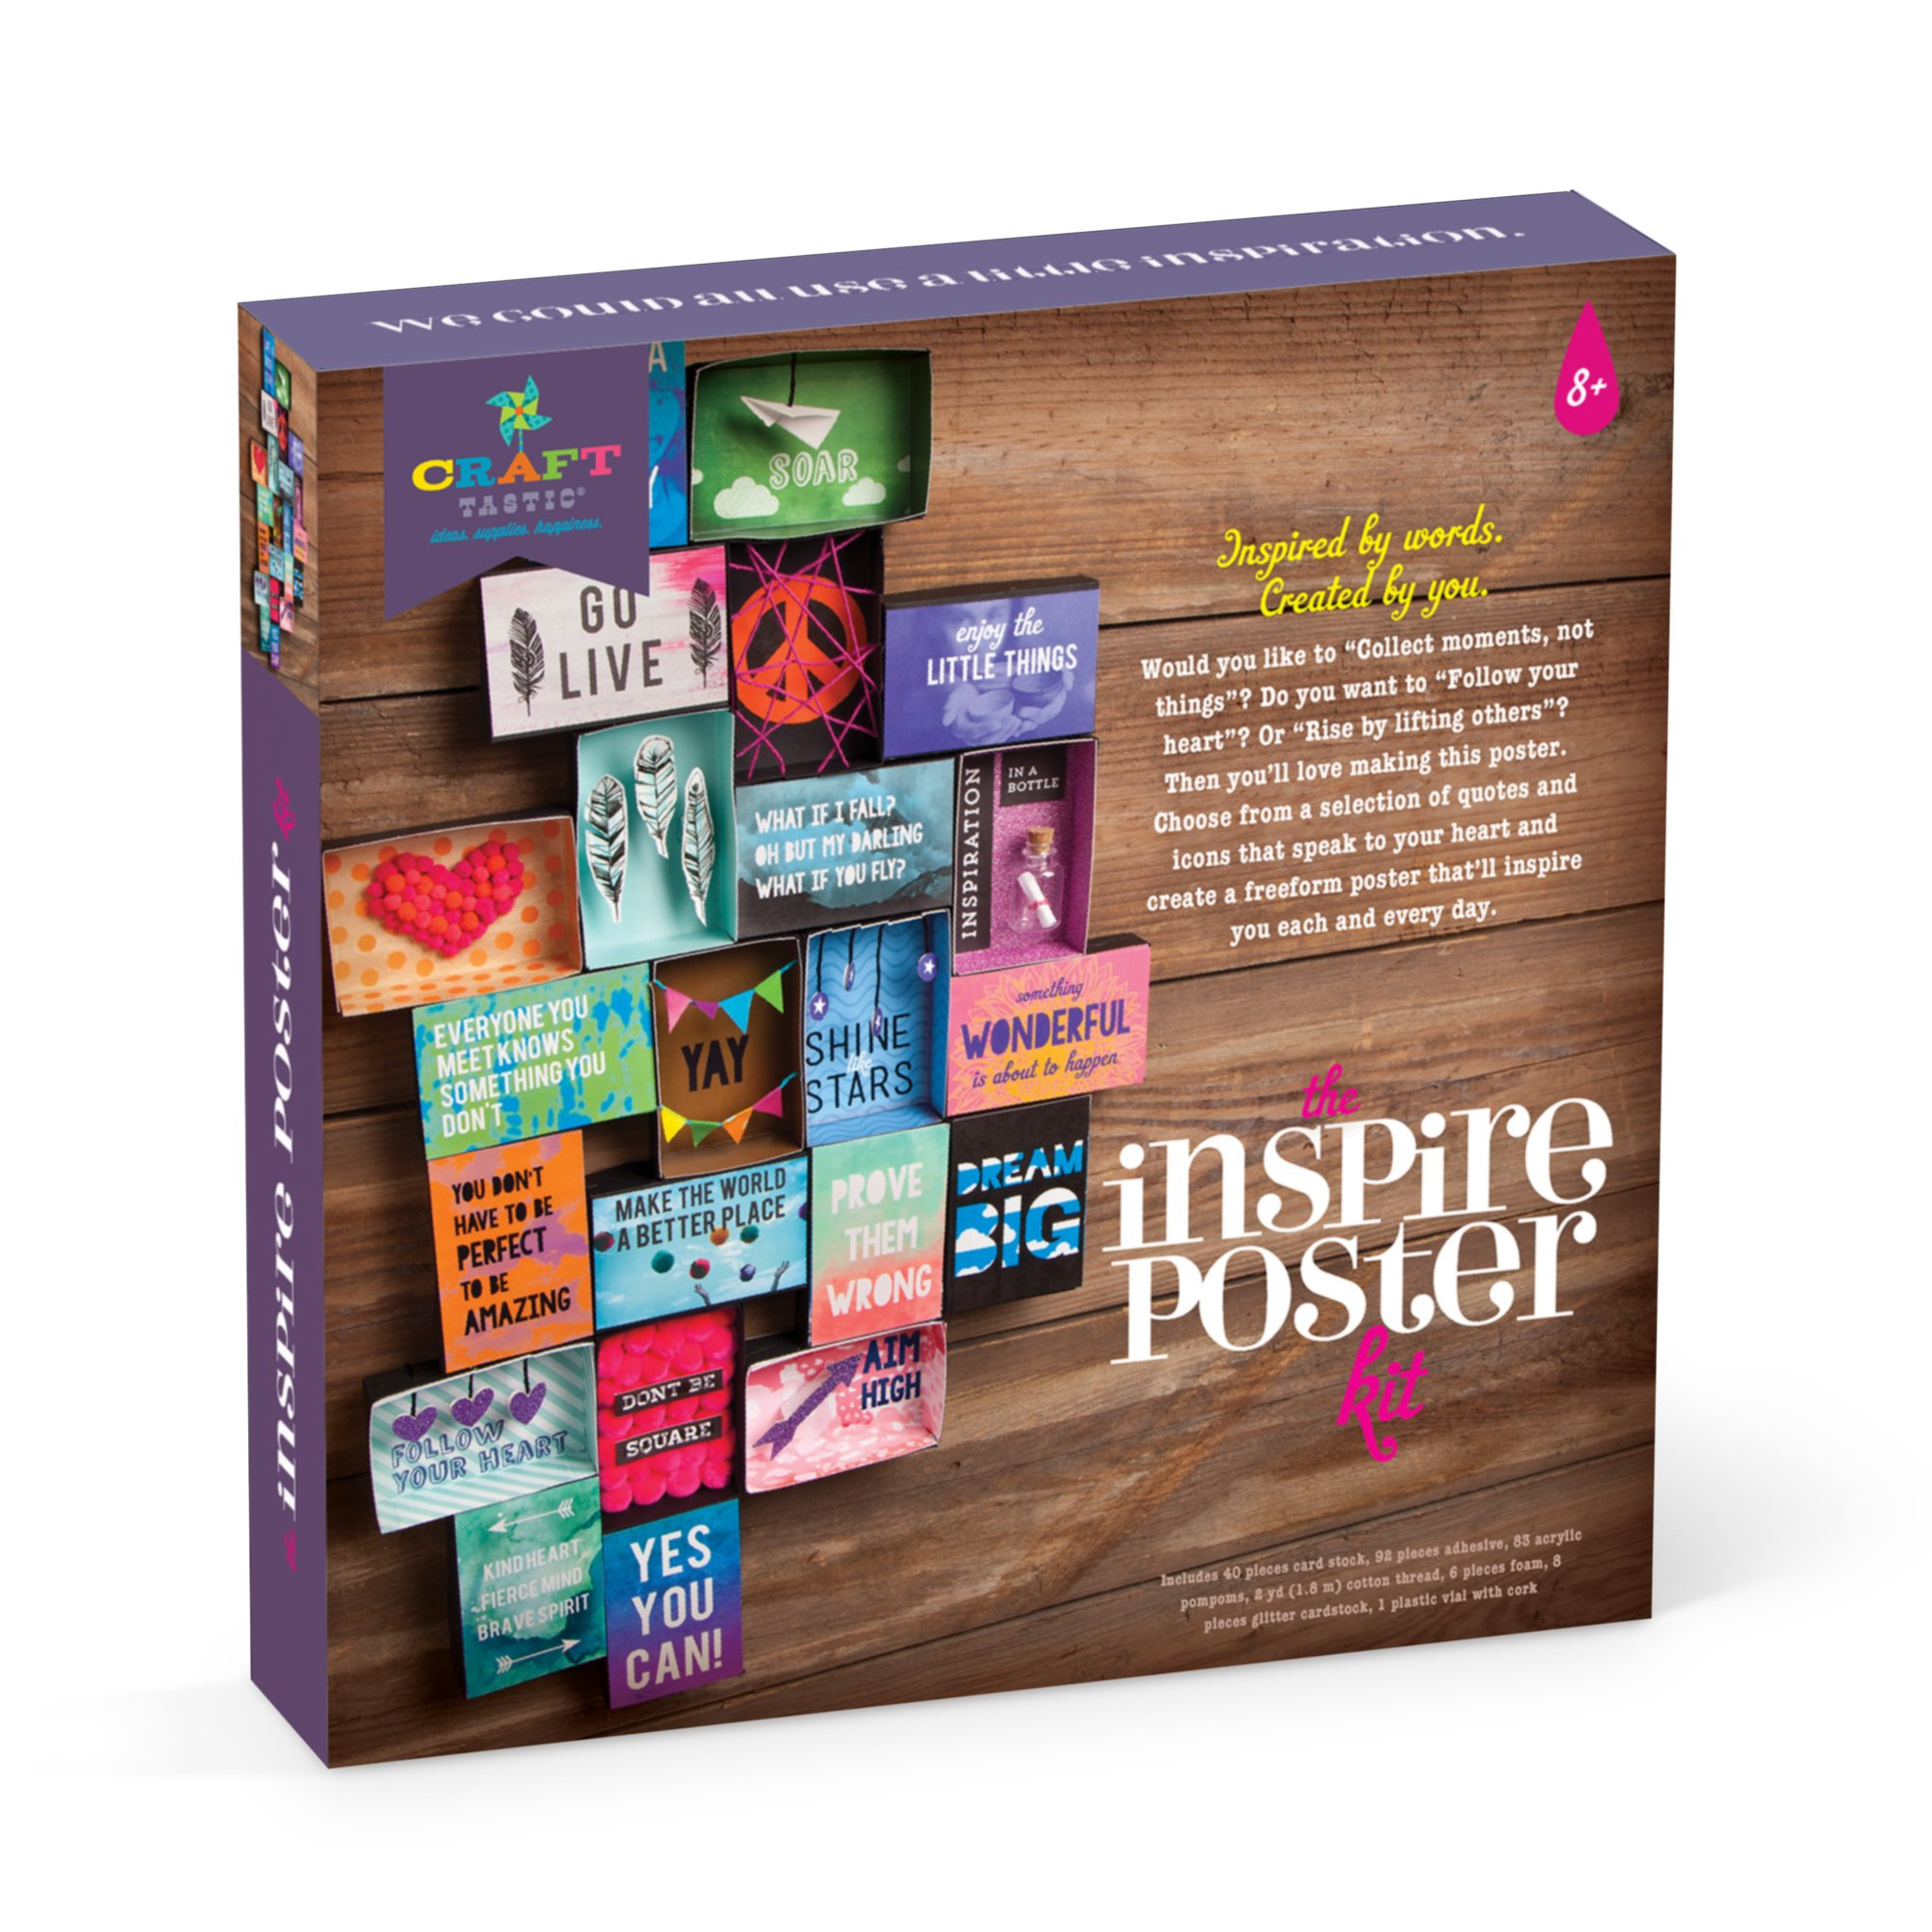 Craft-tastic Inspire Poster Kit Craft Design and Build Your Own 3D